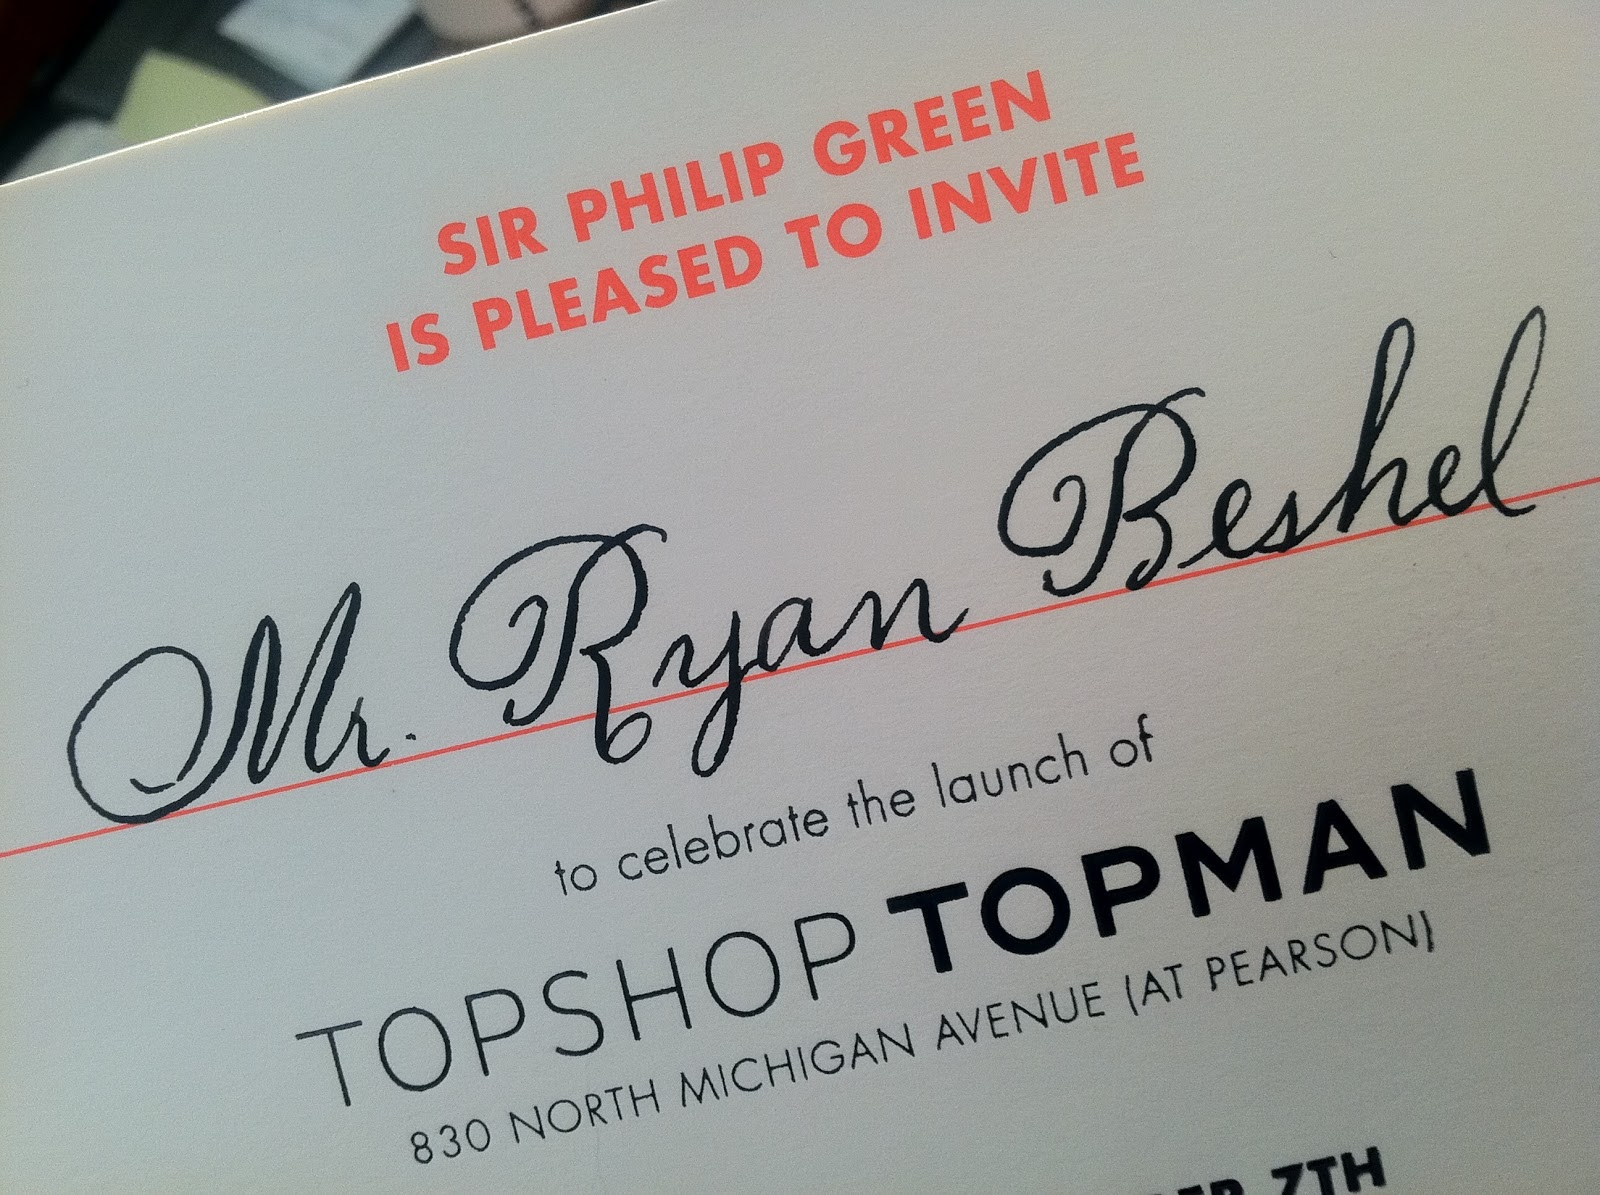 The bowtie memoirs a night in paris to welcome london the topshop topman private dinner - Topman head office number ...